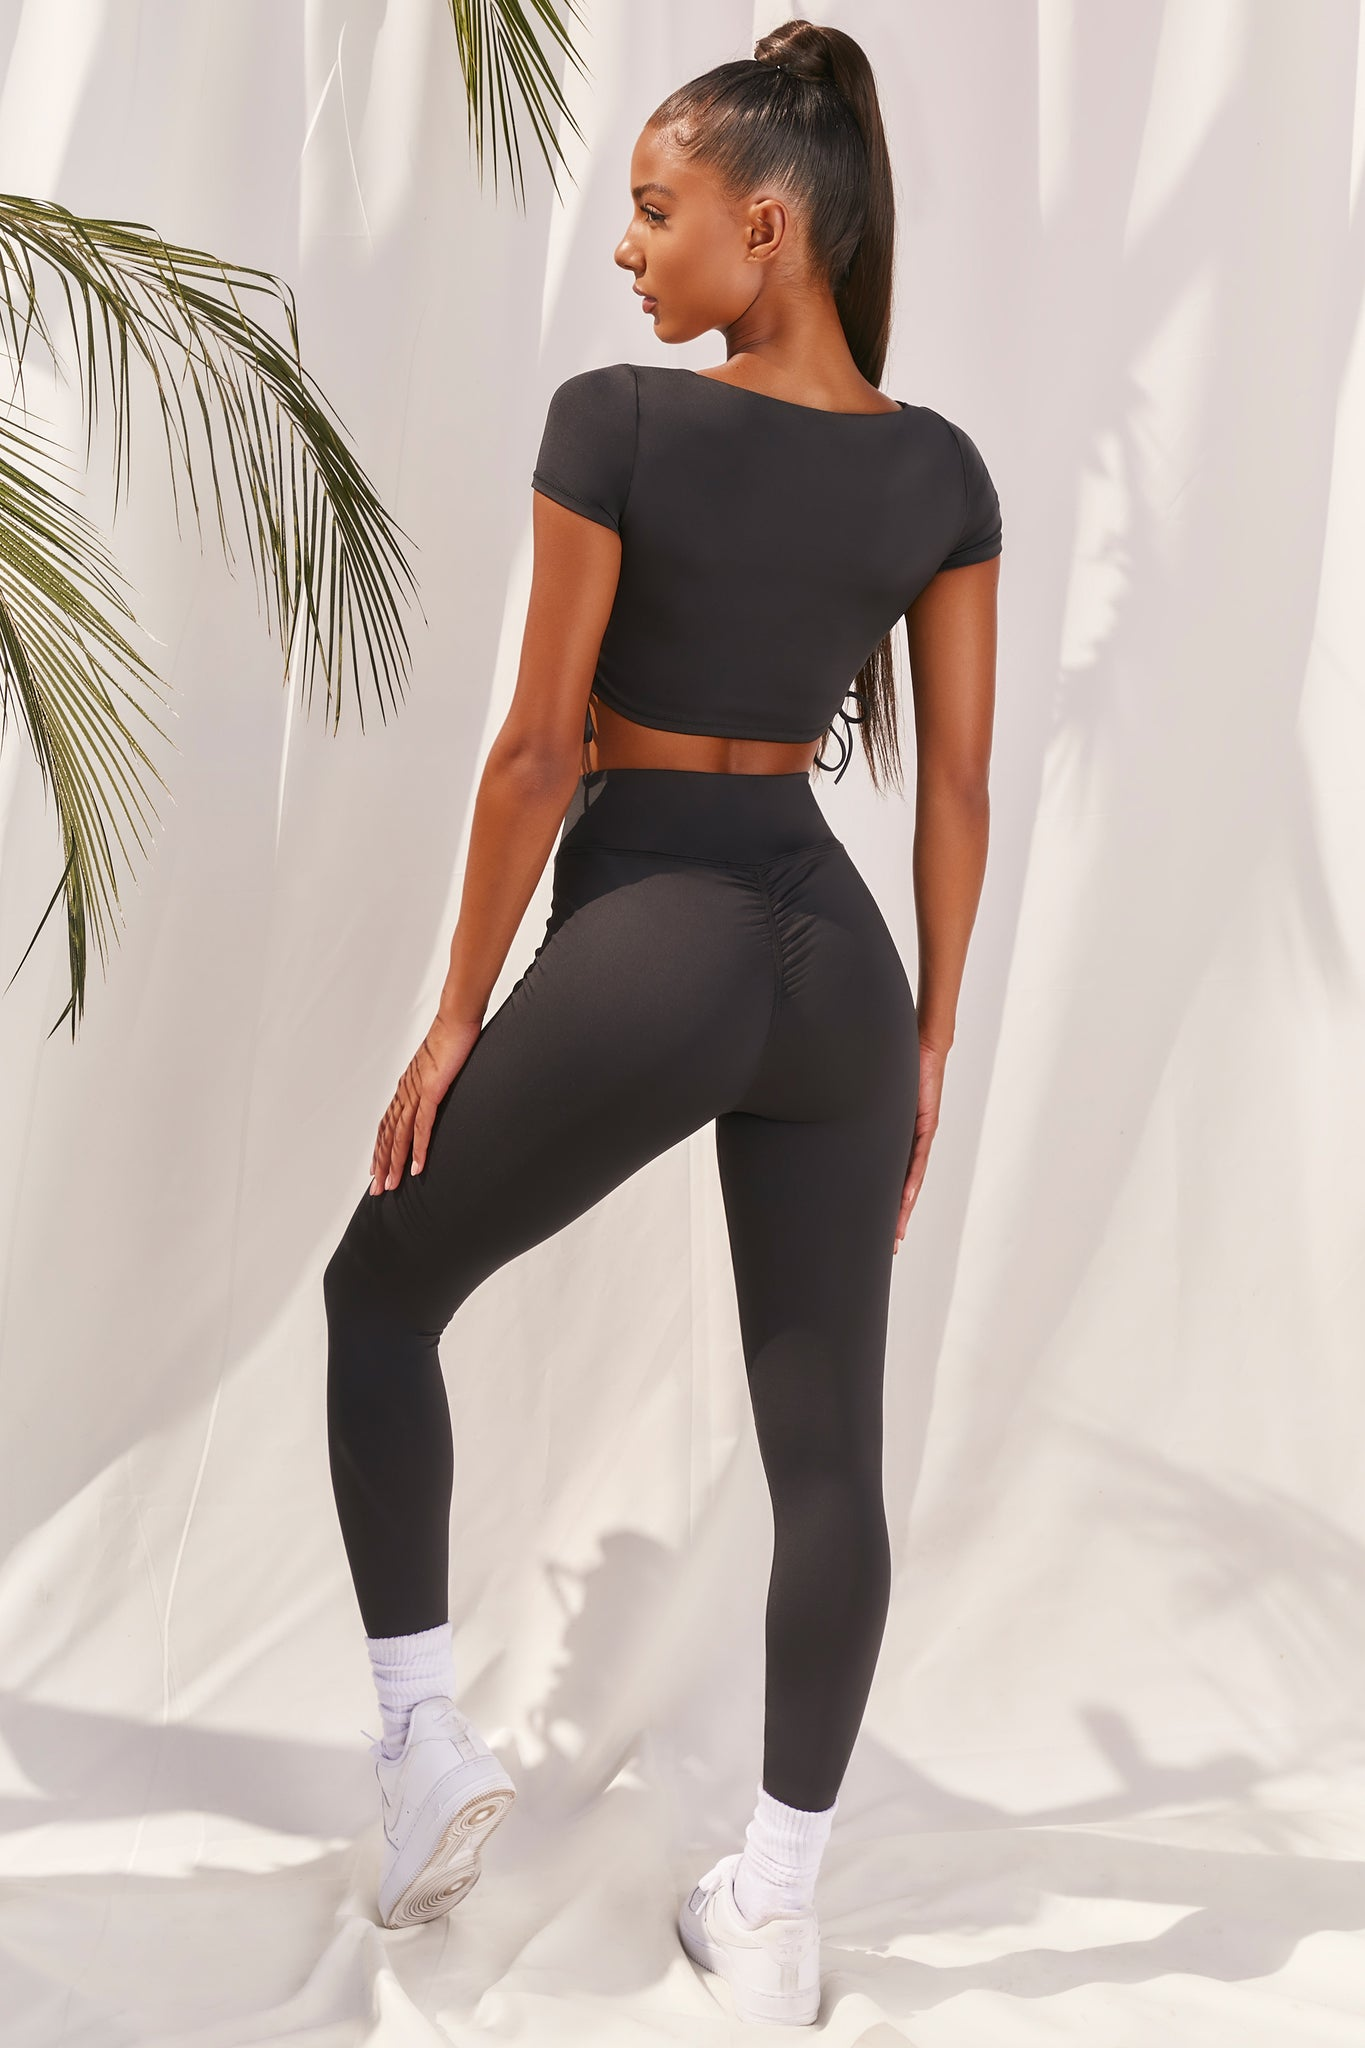 Plain black petite slinky high waisted full length gym leggings with rear ruched seam. Image 3 of 6.